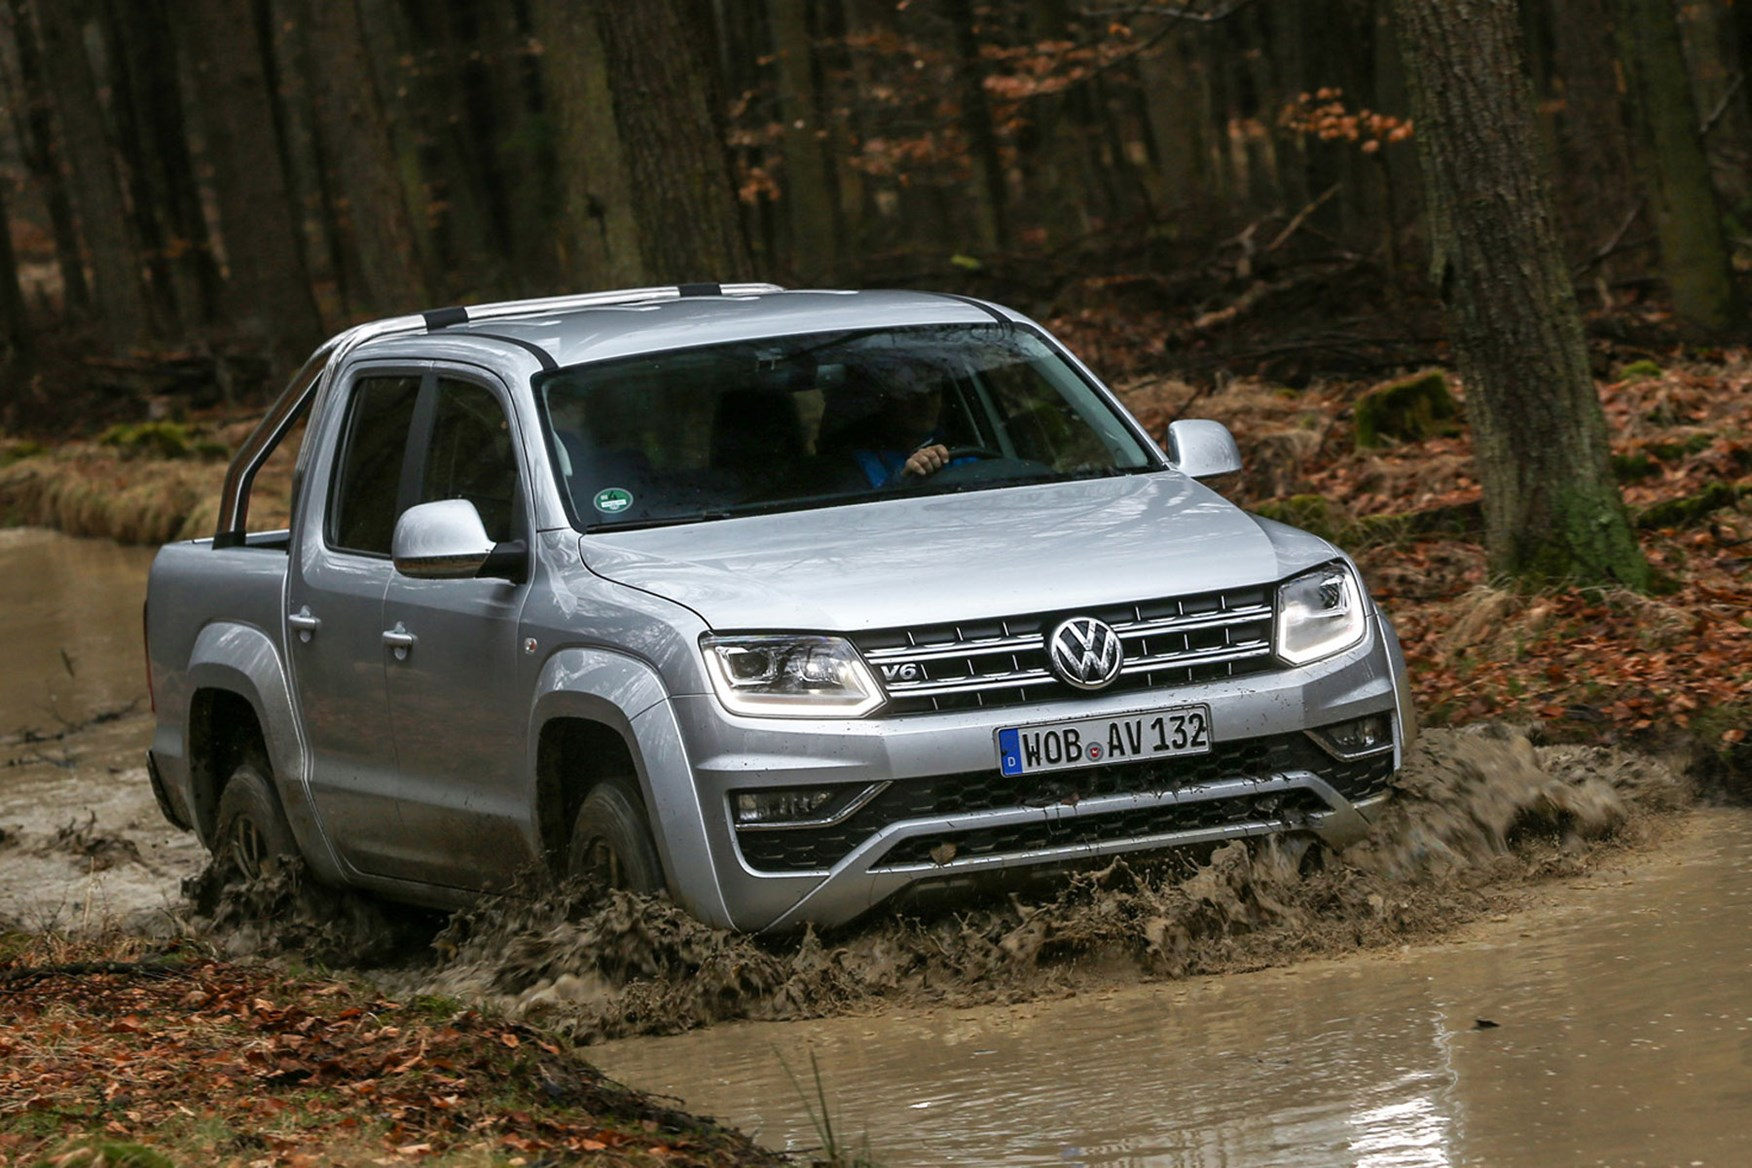 VW Amarok V6 Trendline 204hp review - front view, driving through muddy river, silver